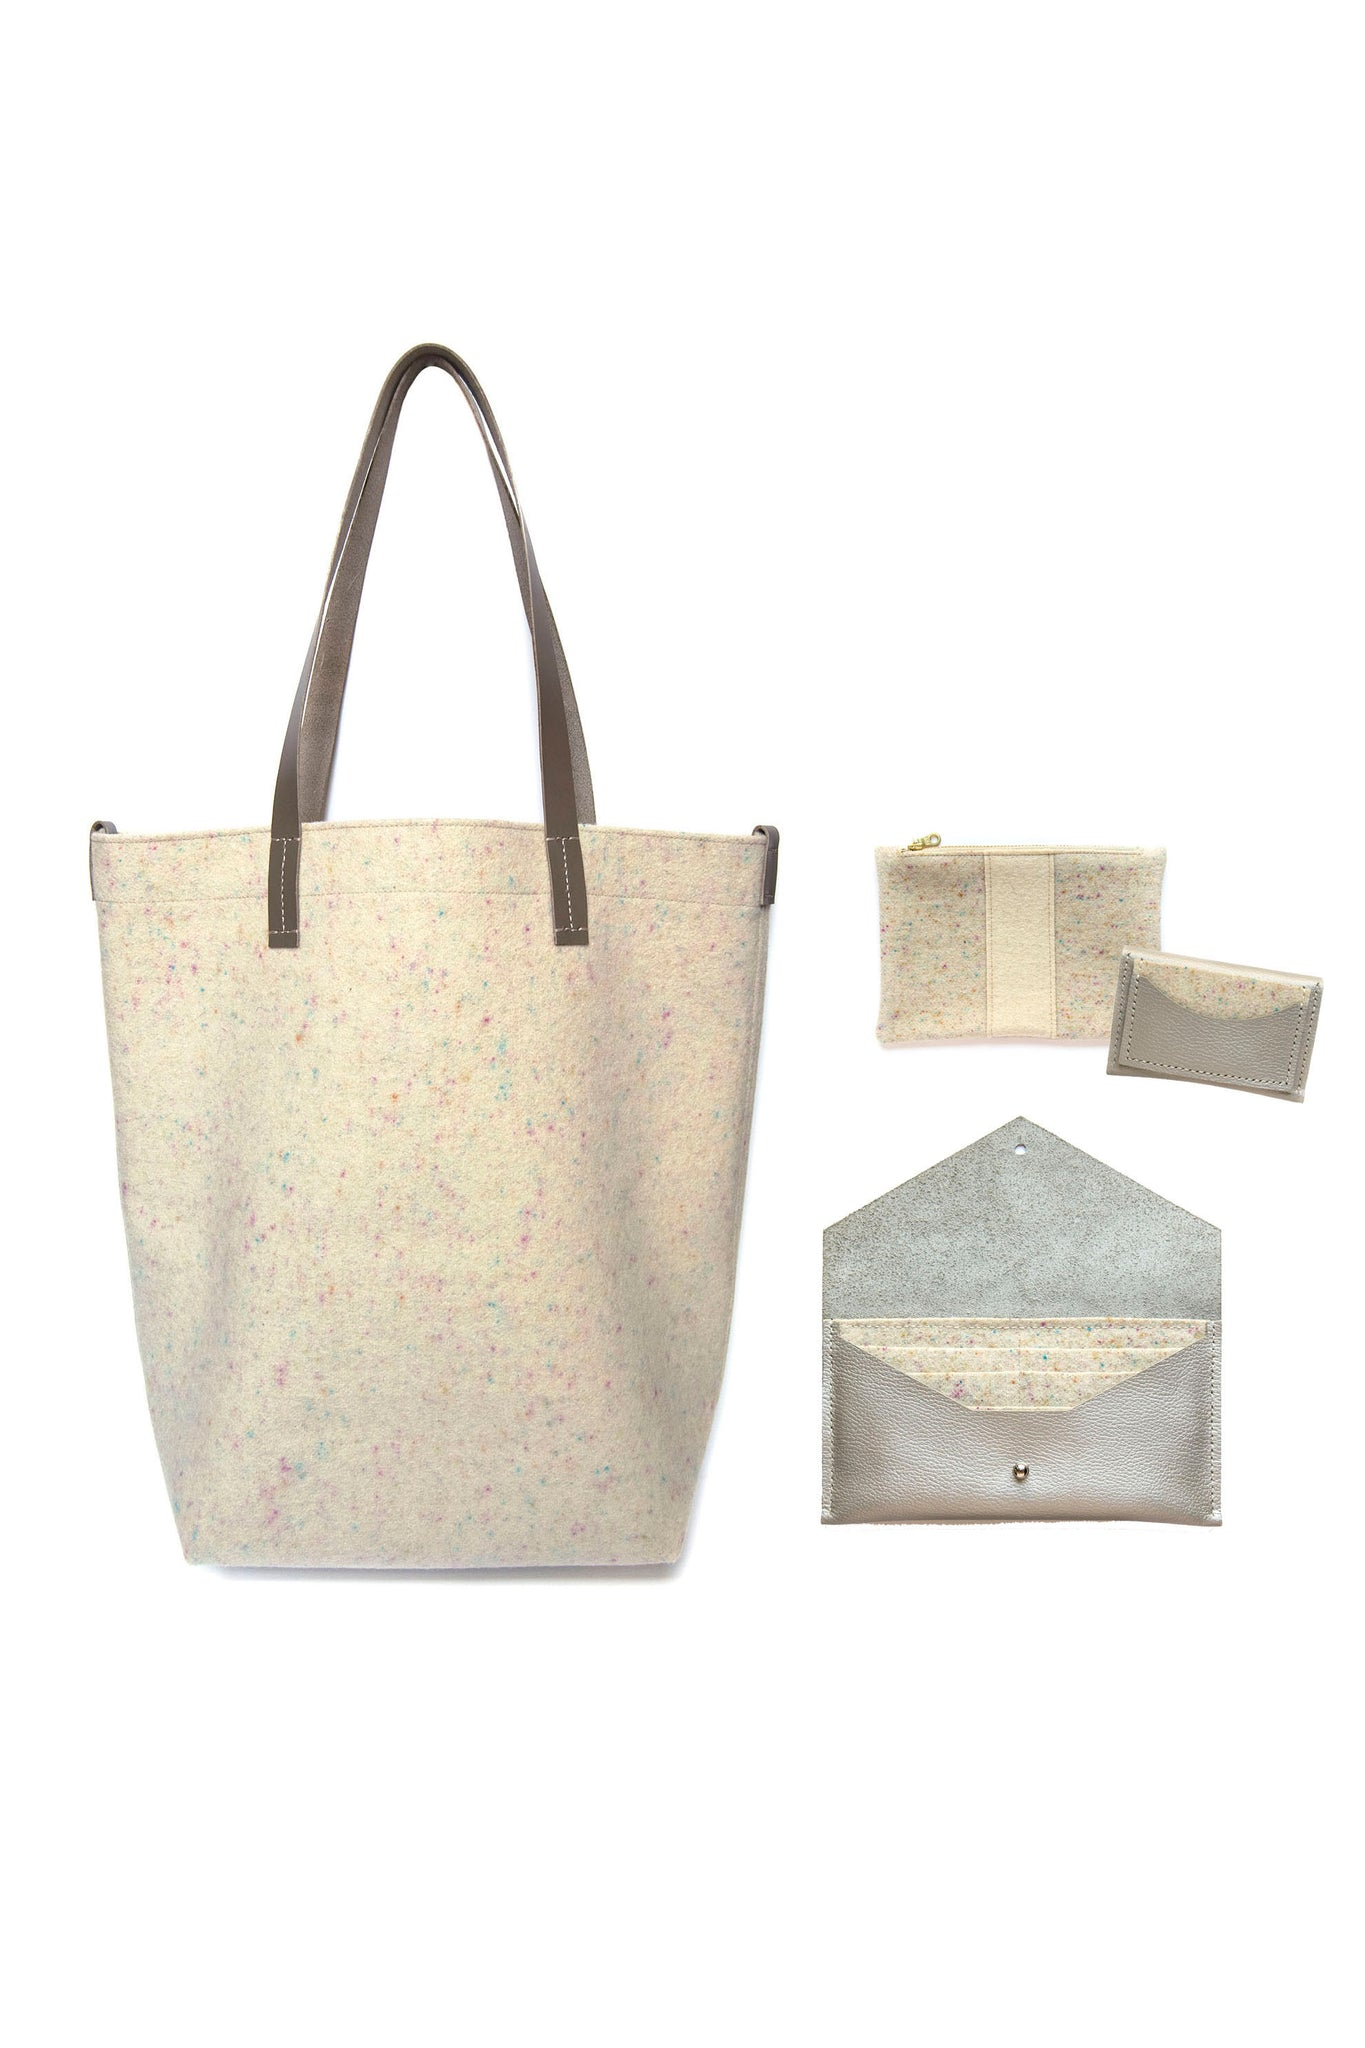 Style Inspiration: The Wool Shopper in Confetti